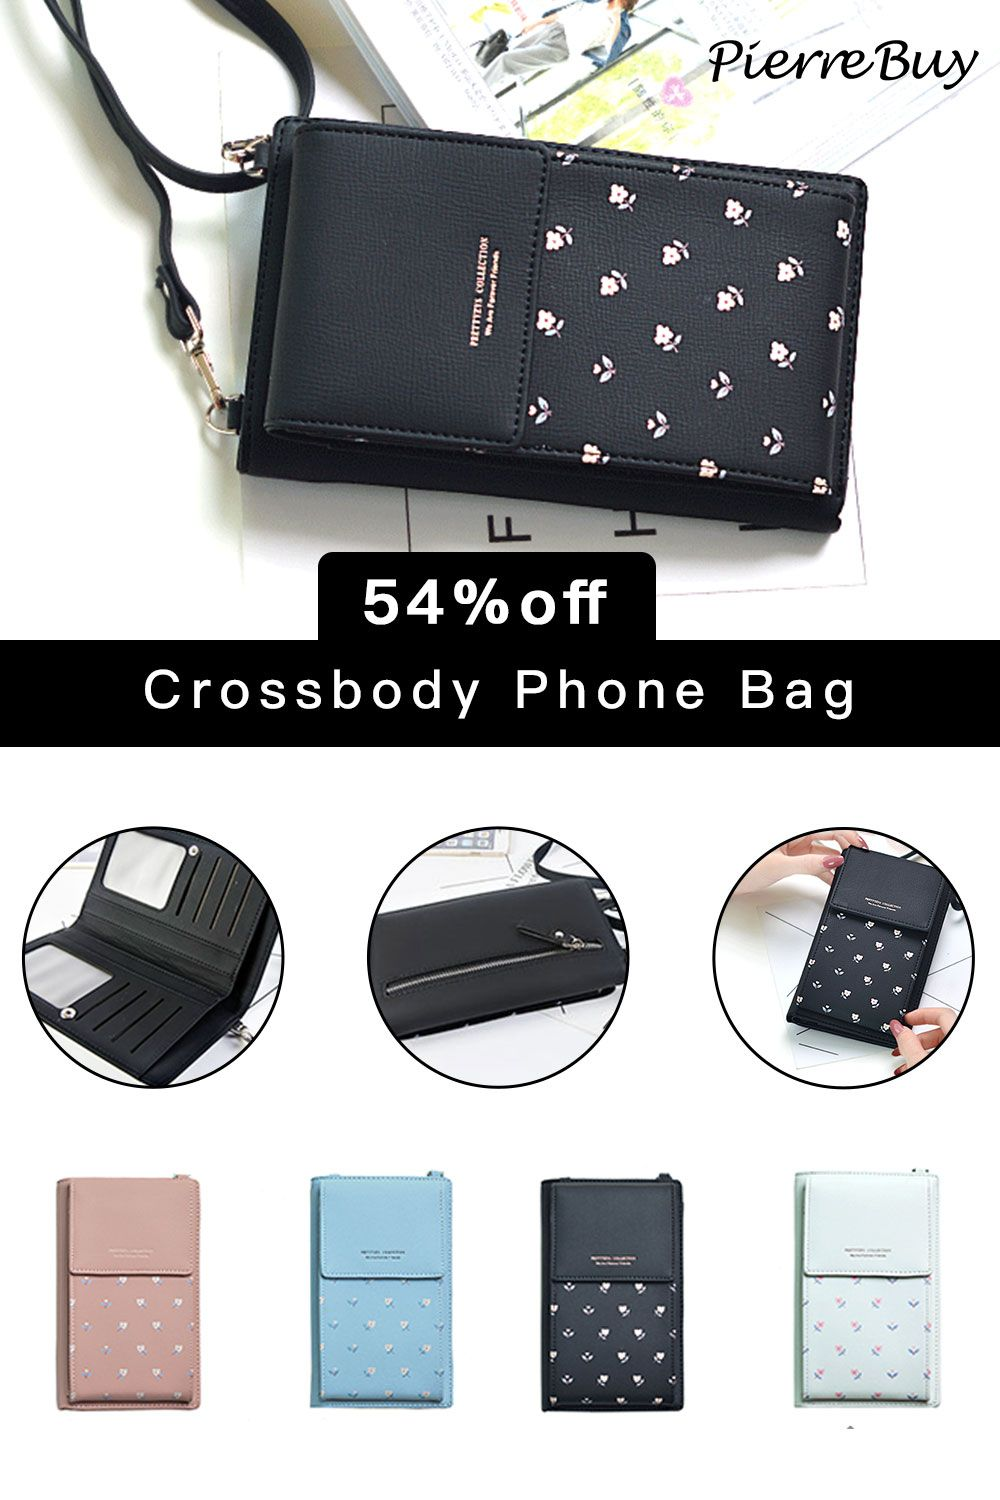 Cell Phone Purse Triangle Avocado Crossbody Bag Womens Lightweight Portable Small Wallet Waterproof PU Leather Mini Shoulder Bag Easy Care Phone Wallet For Shopping Date Hiking